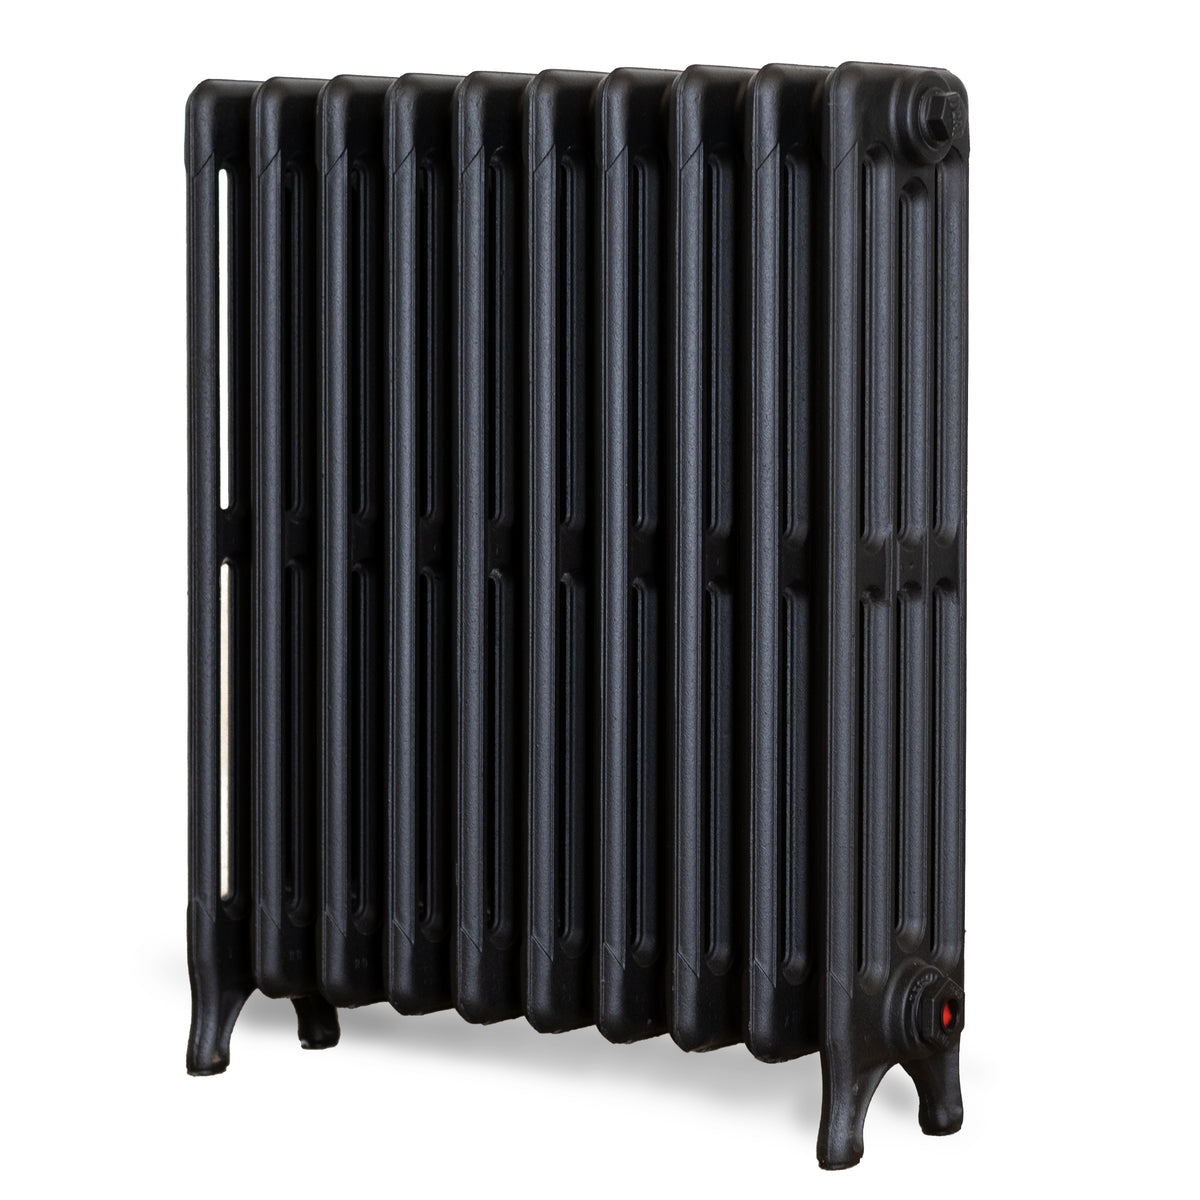 Fully Restored Cast Iron Radiator 4 Column, (61.5cm Tall x 53cm Long) | The Architectural Forum